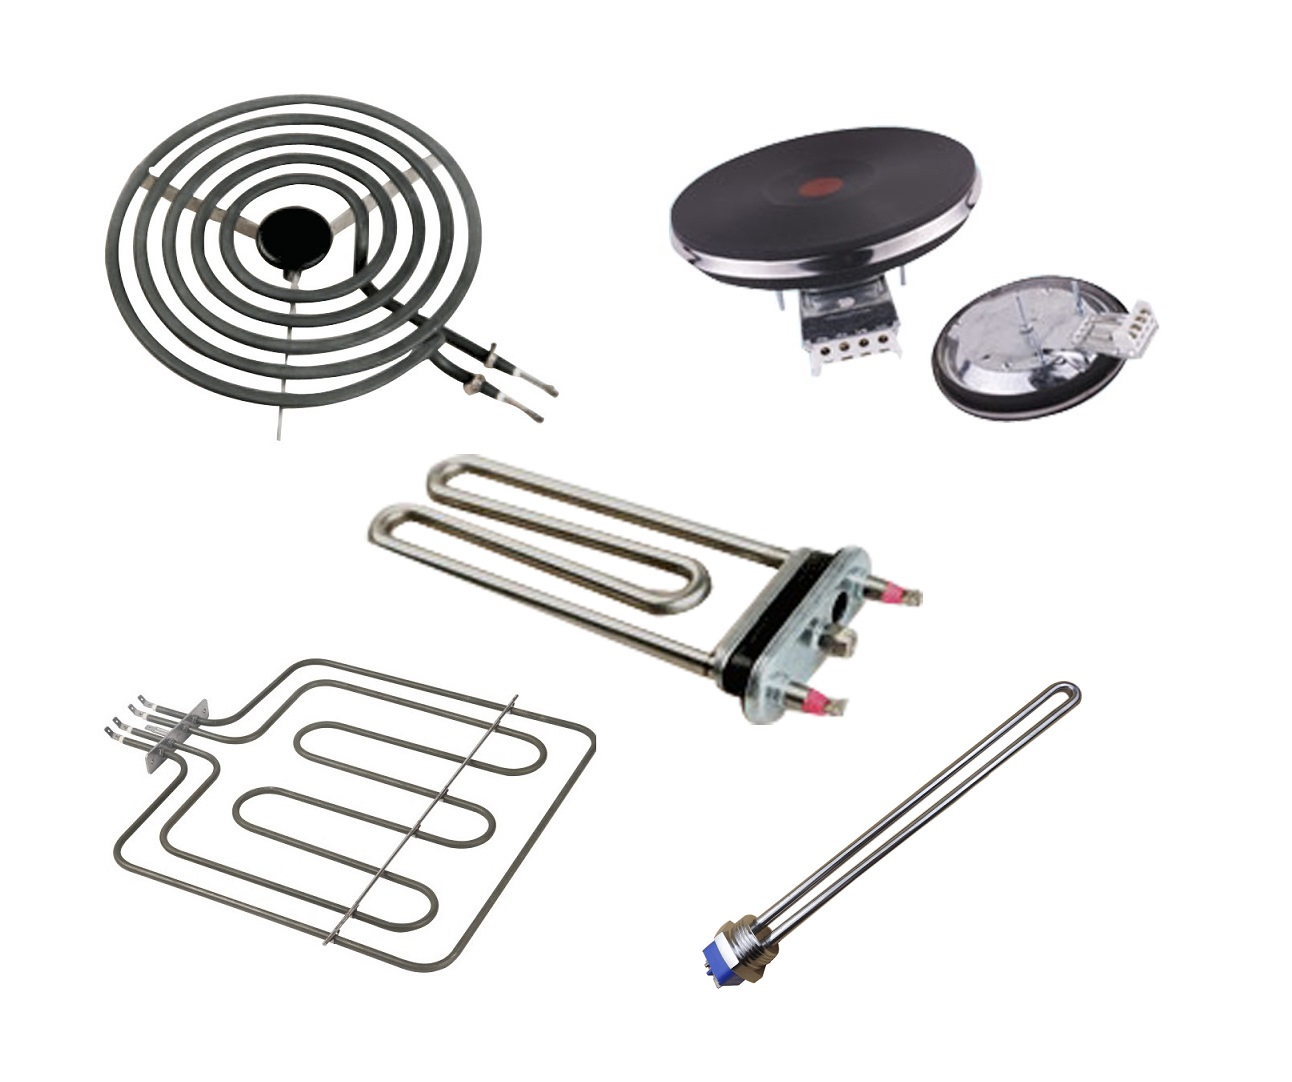 Heating Elements For Home Appliance